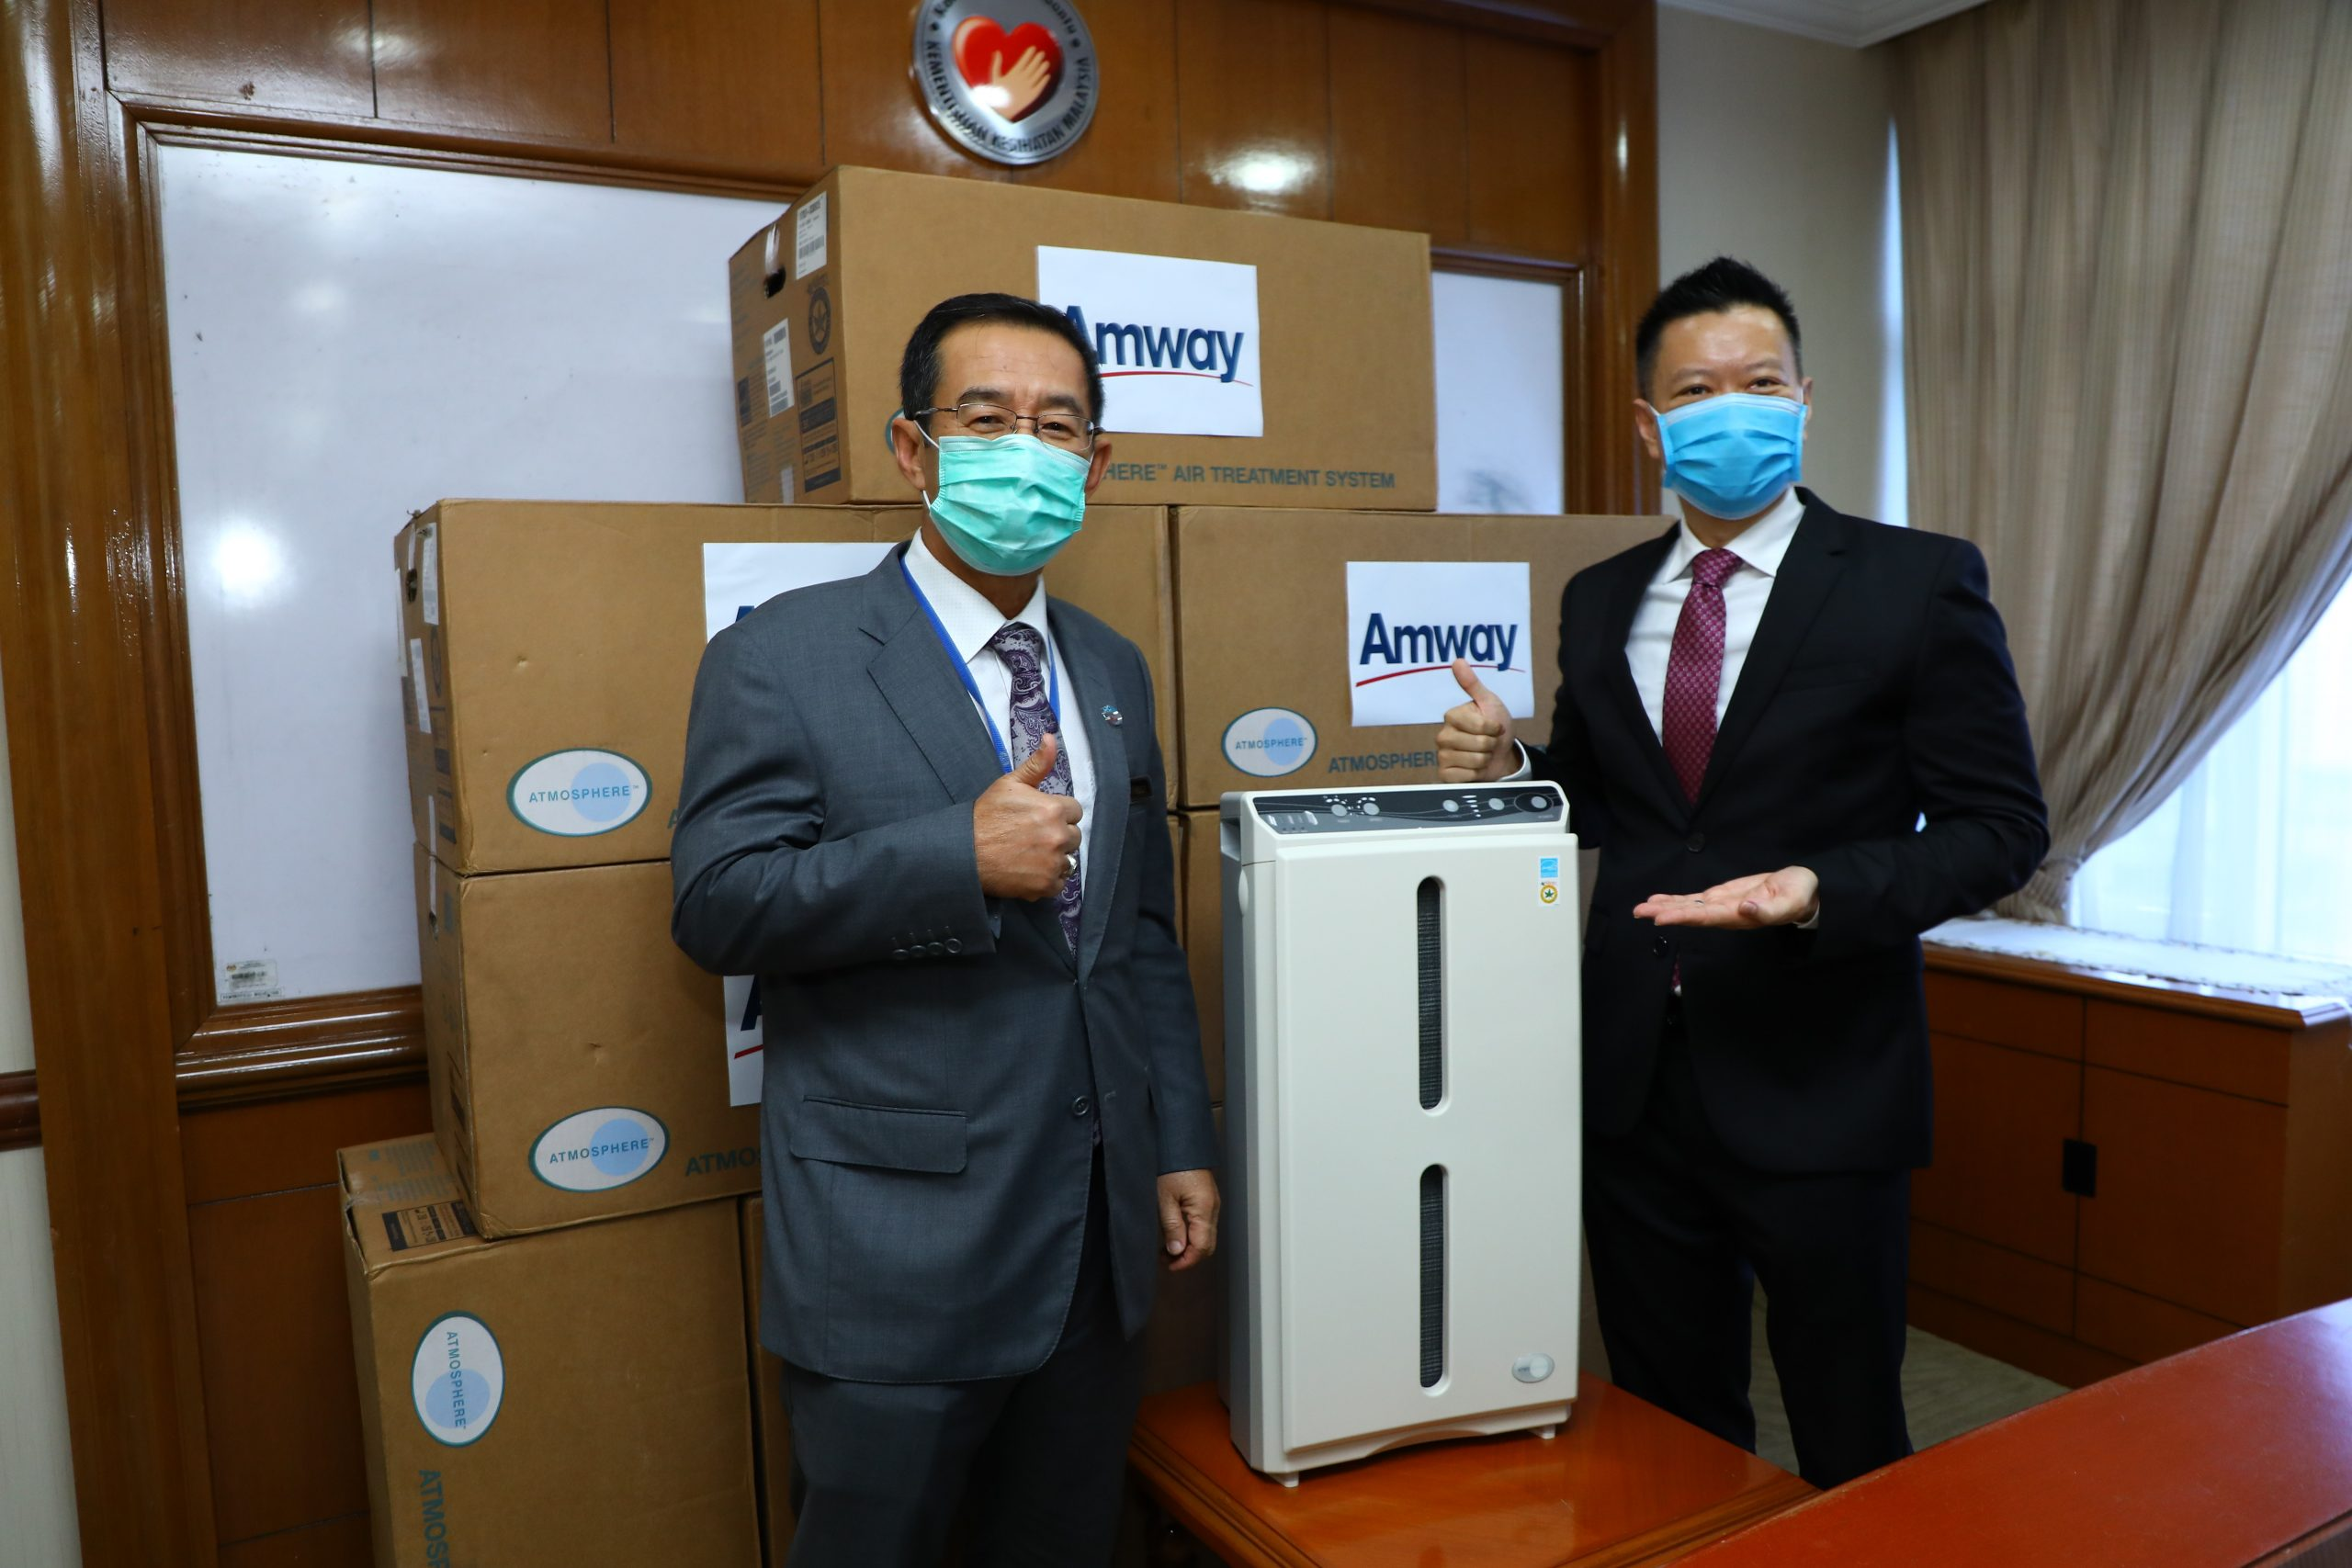 R Ministry of Health Secretary General Datuk Seri Dr Chen Chaw Min receiving Atmosphere units from Mr Mike Duong Managing Director of Malaysia Singapore and Brunei scaled